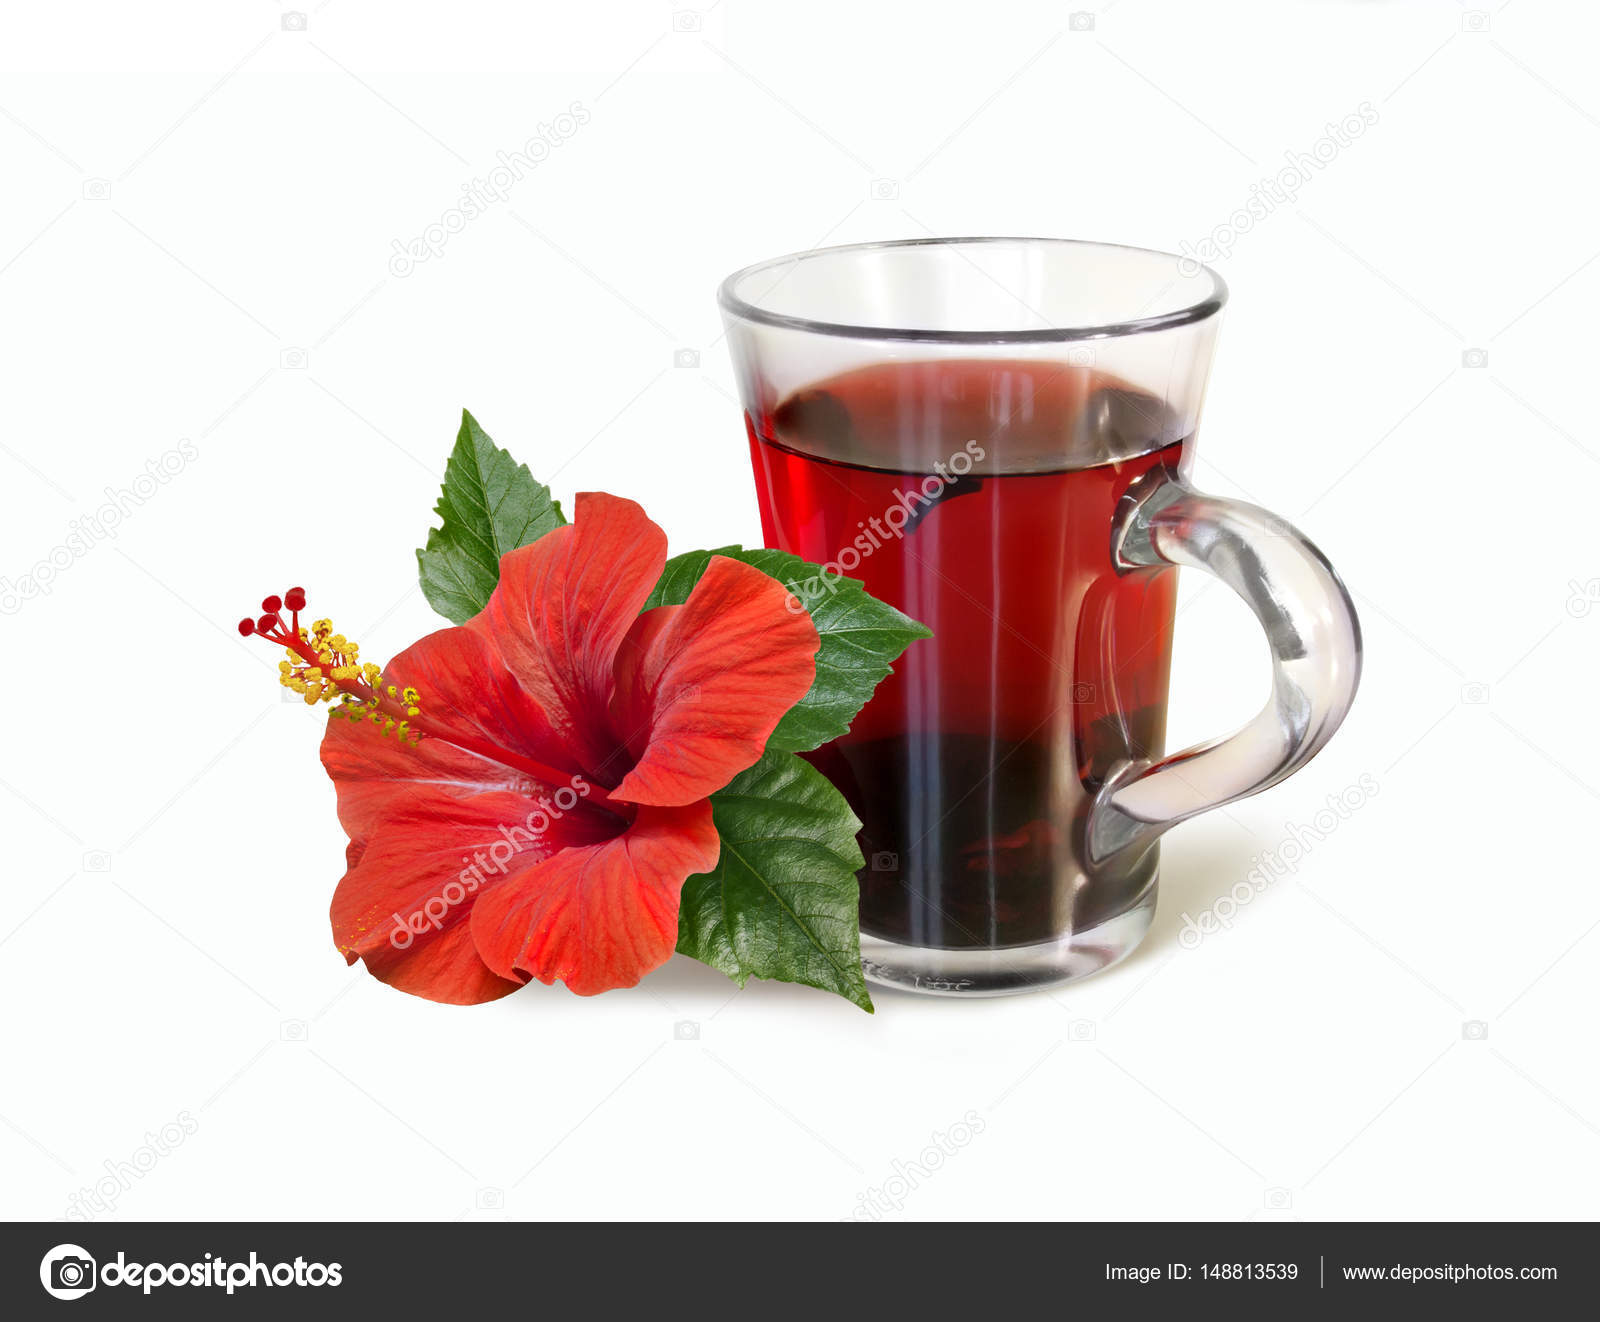 Red hibiscus tea drink and flower isolated on white background red hibiscus tea drink and flower isolated on white background stock photo izmirmasajfo